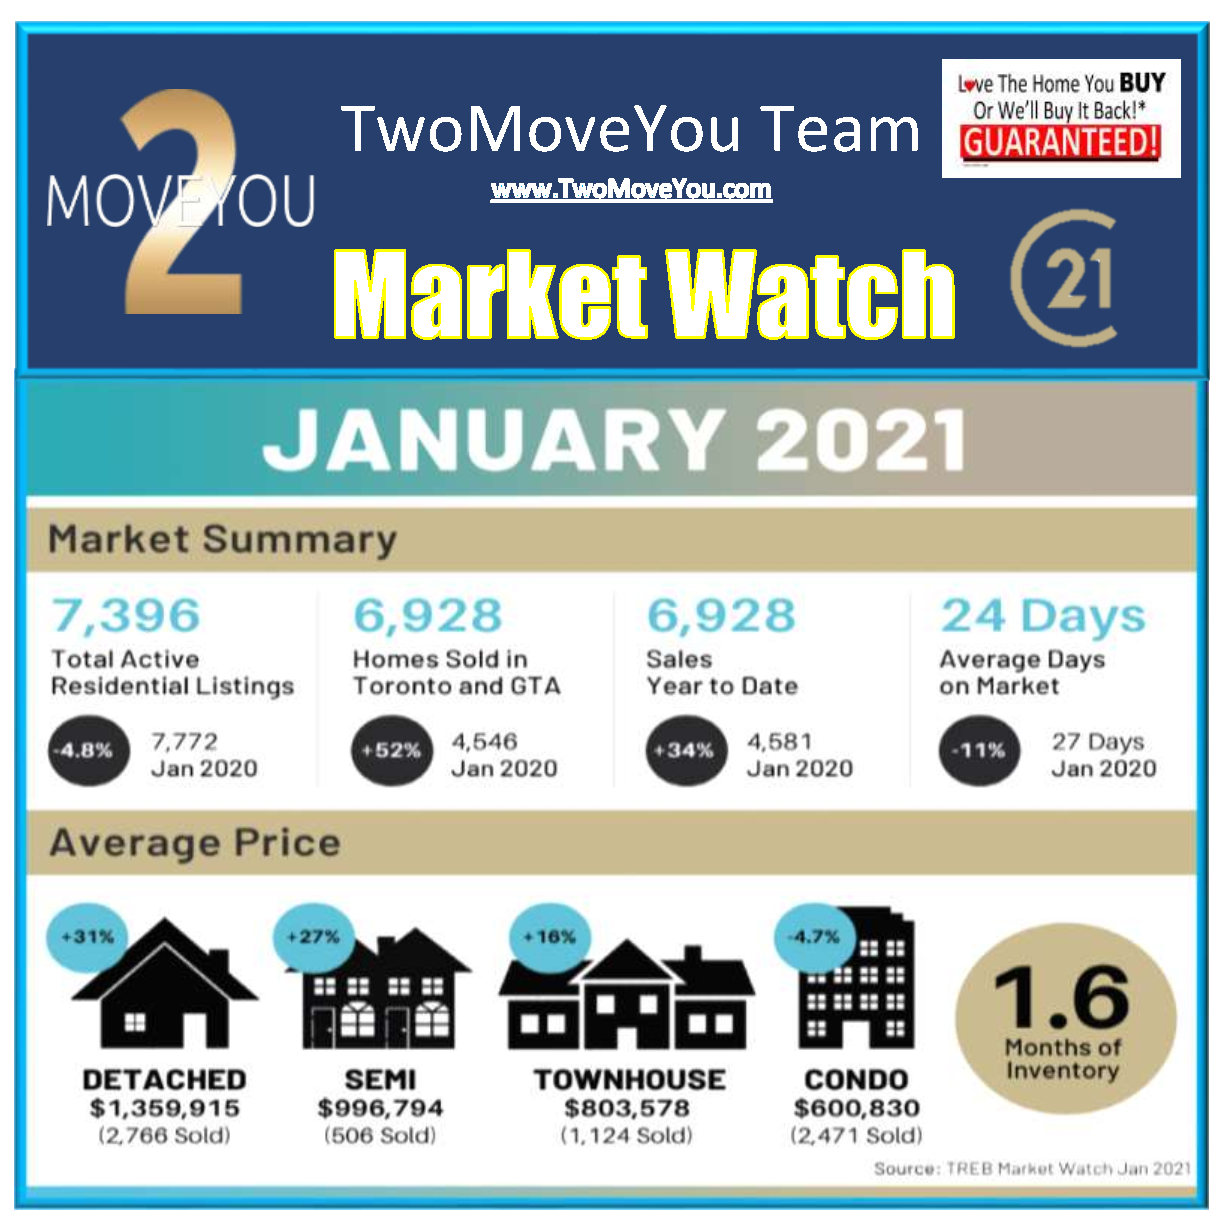 TwoMoveYou Market Watch Jan 2021